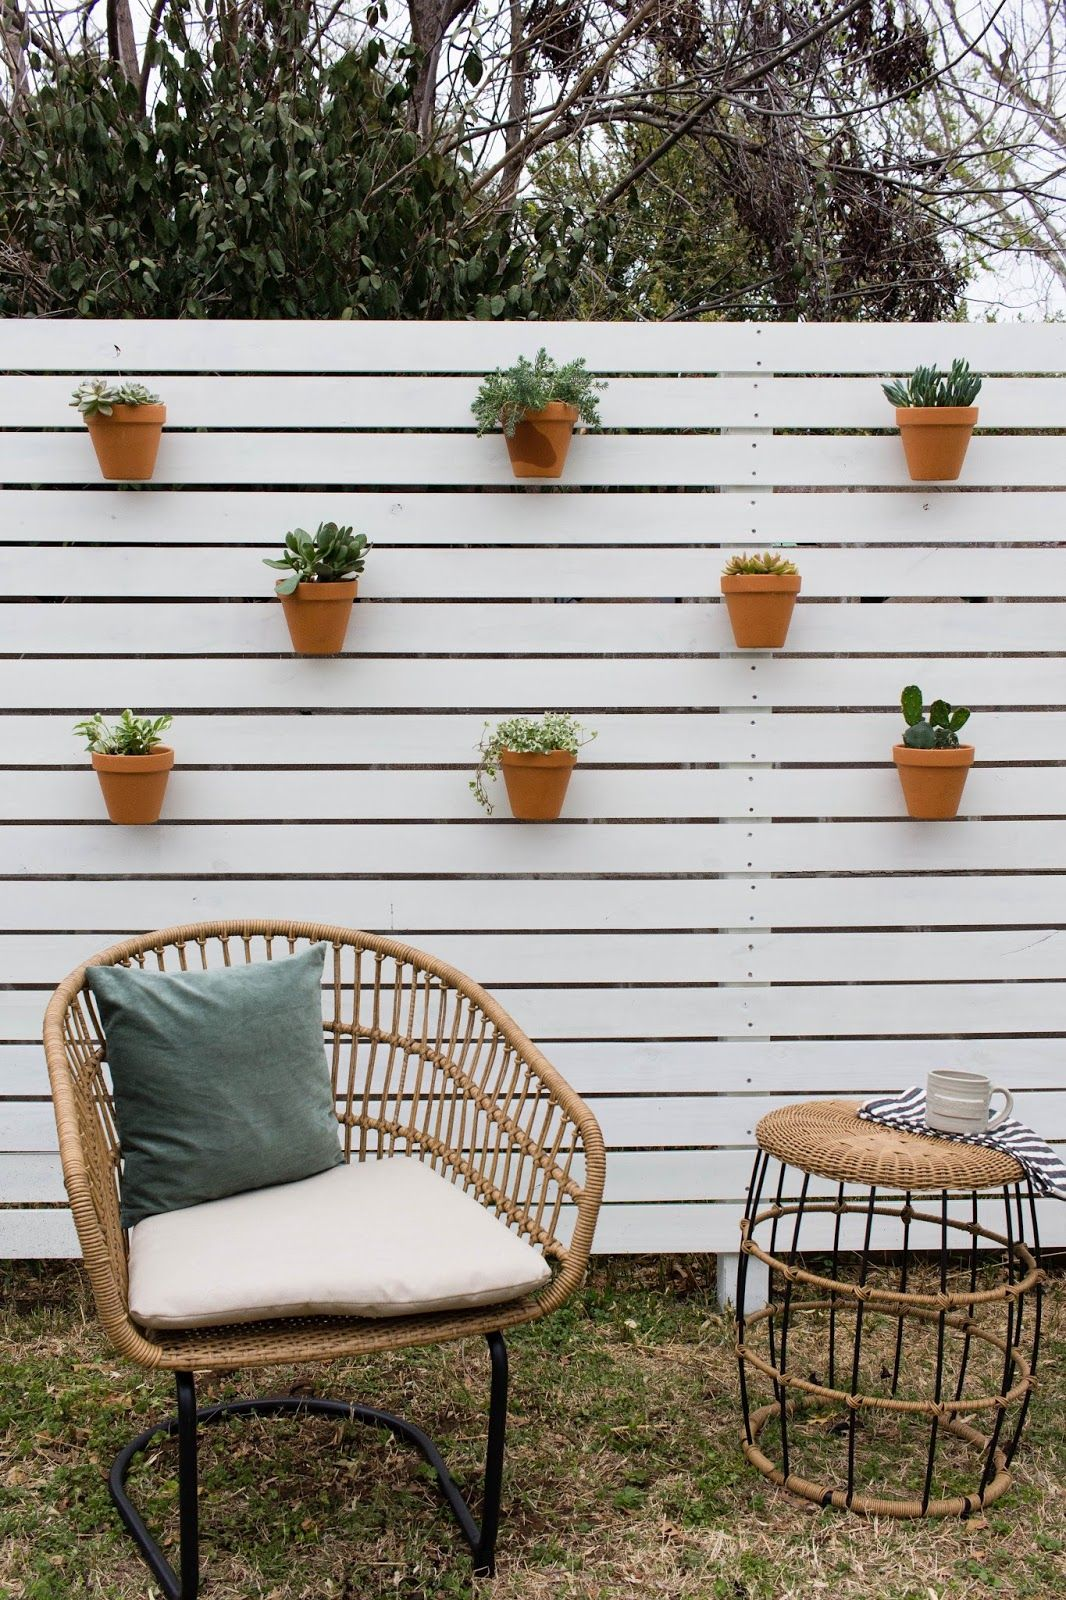 Horizontal Privacy Fence   Pinterest   Privacy fences, Fences and ...